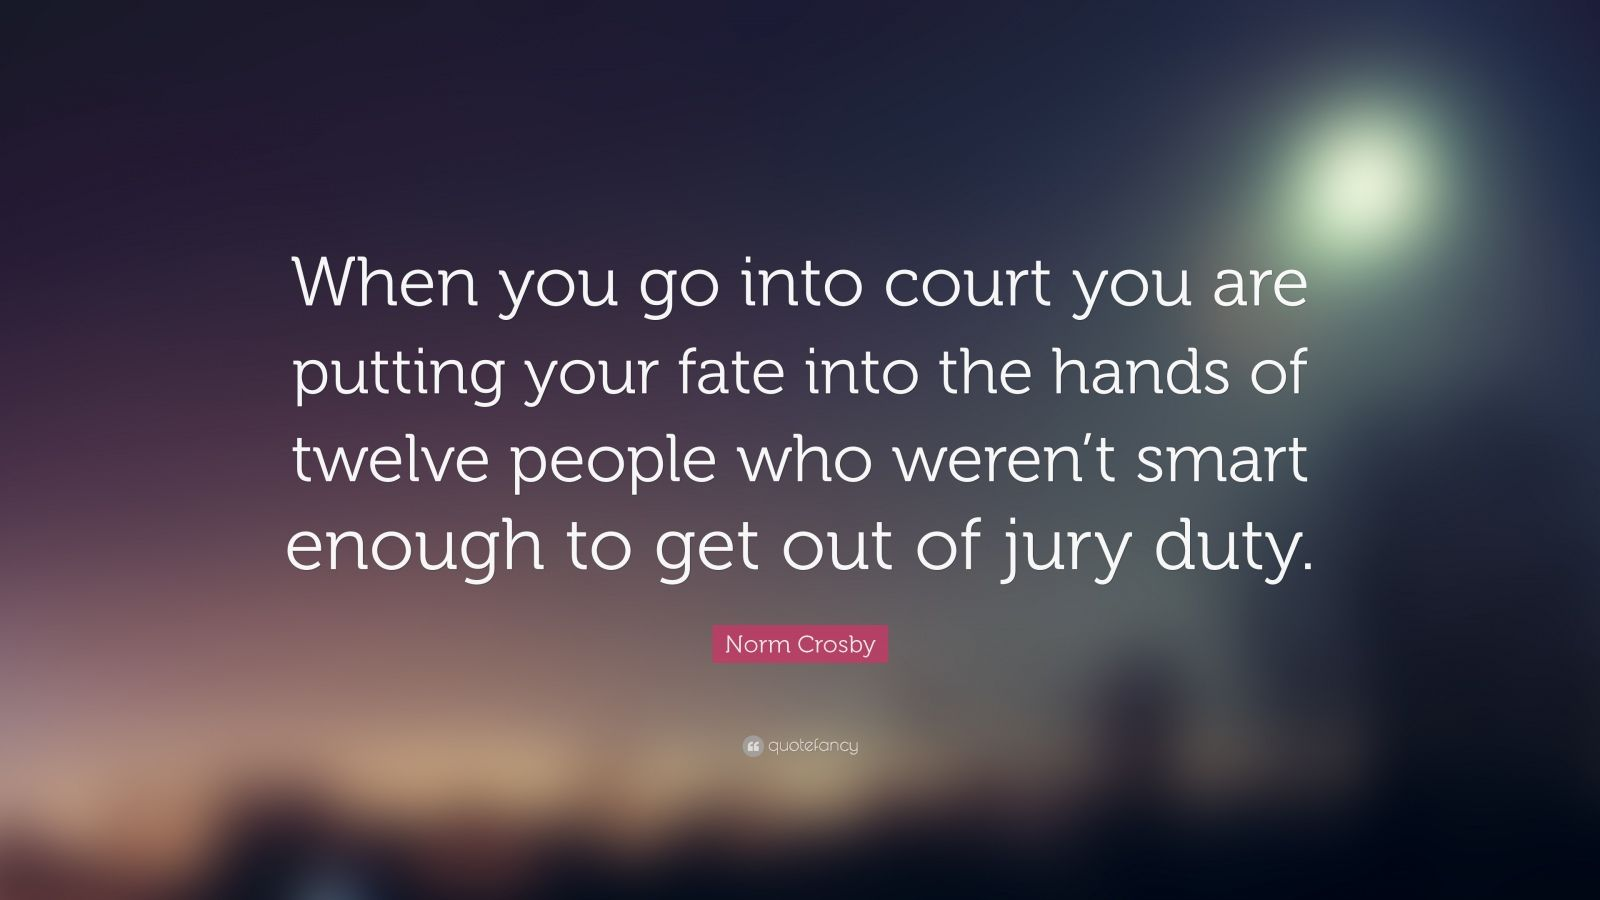 """Norm Crosby Quote: """"When you go into court you are putting your fate into the hands of twelve people who weren't smart enough to get out of jury duty."""""""